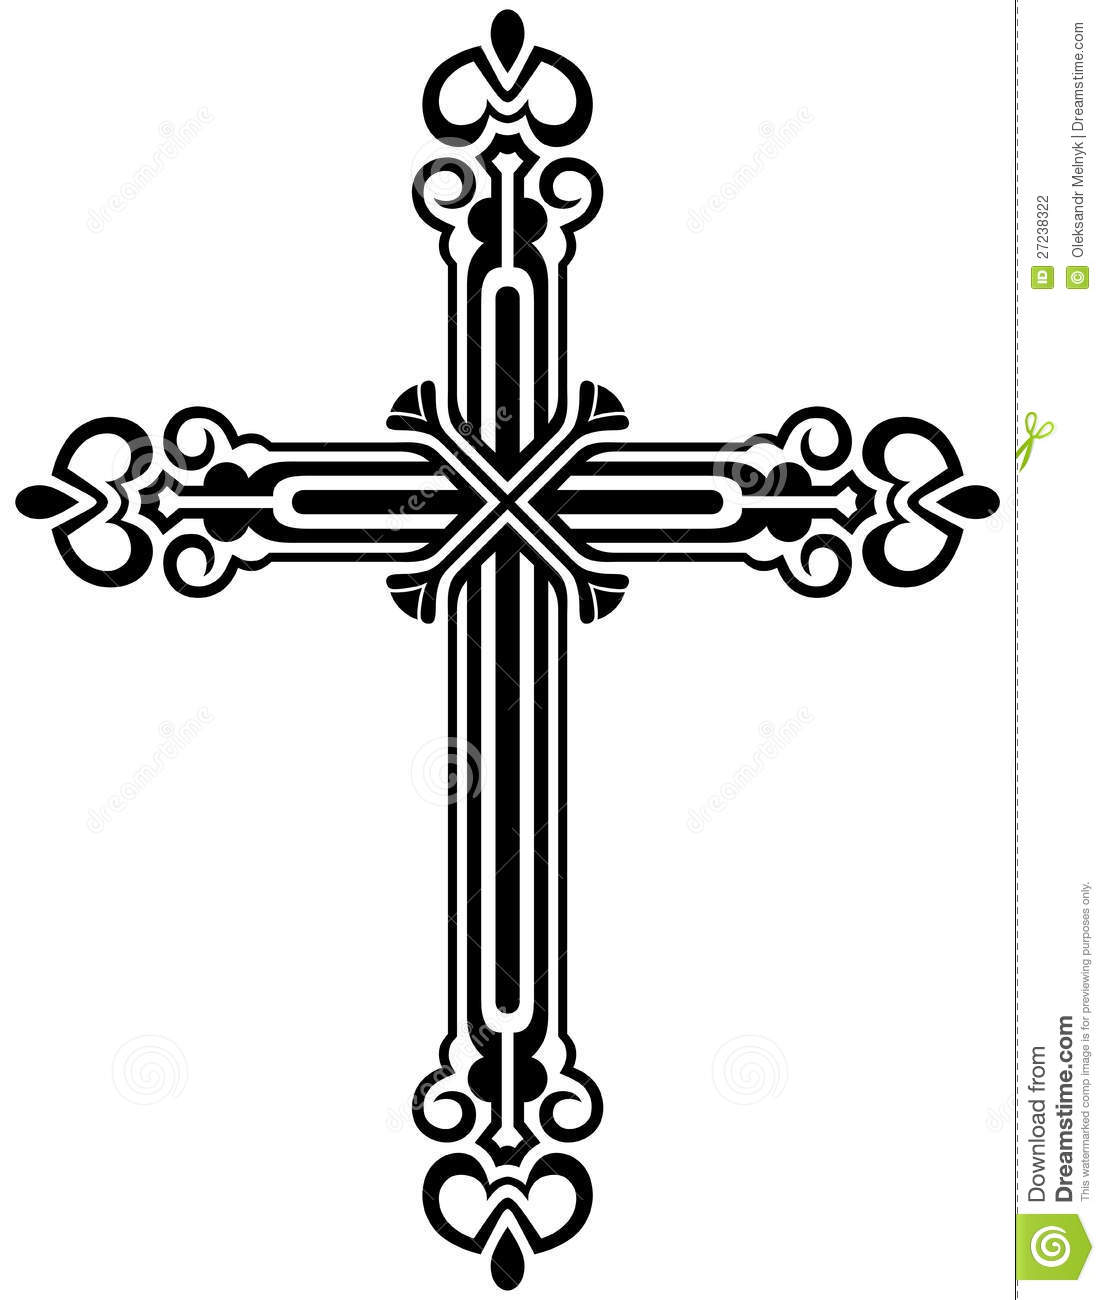 Religious Cross Design Collection Stock Photography - Image: 27238322